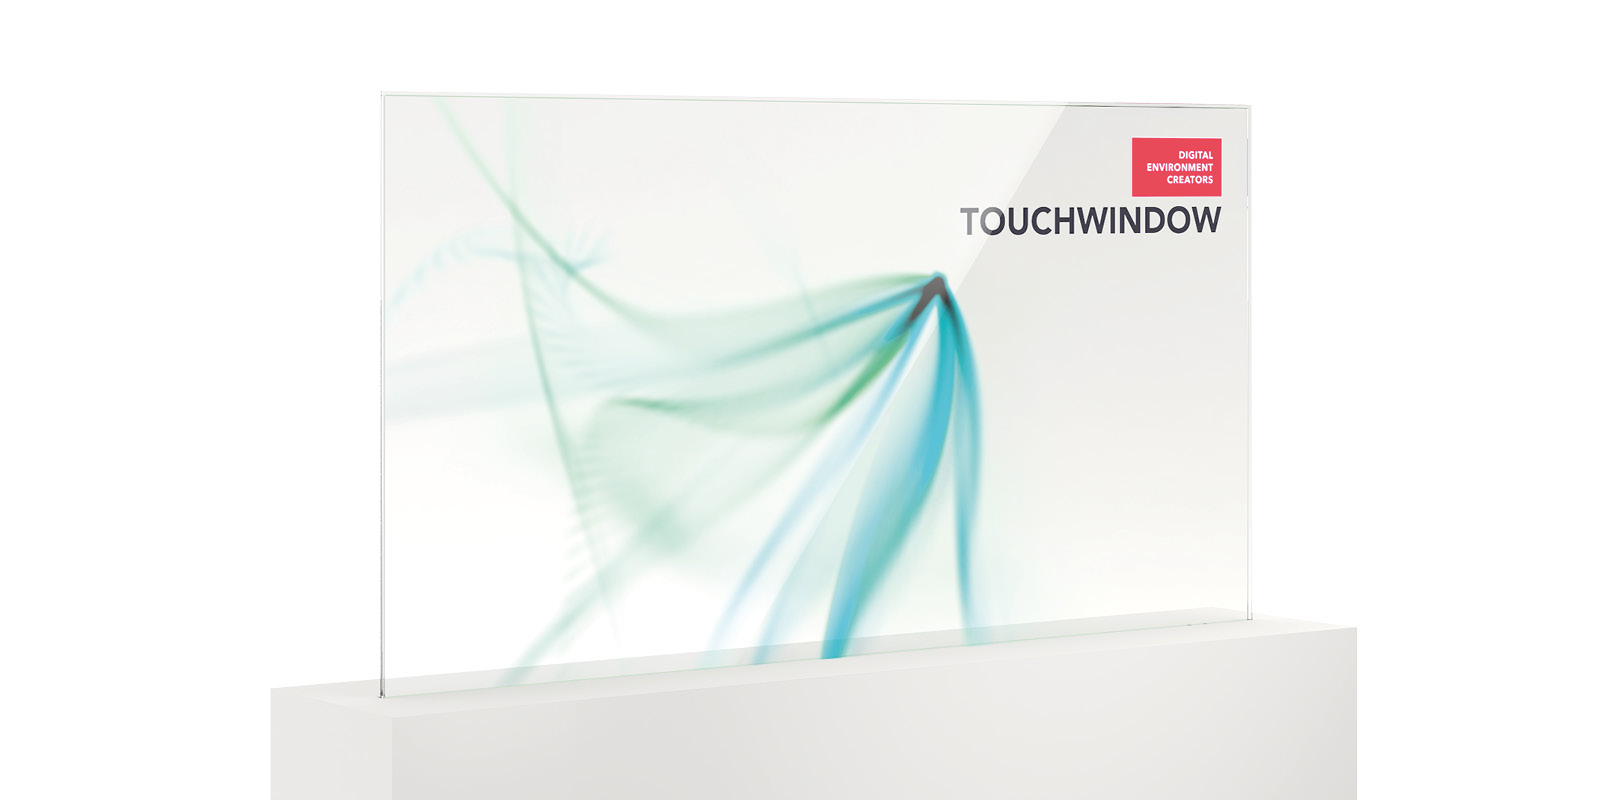 Touchwindow transparent-oled